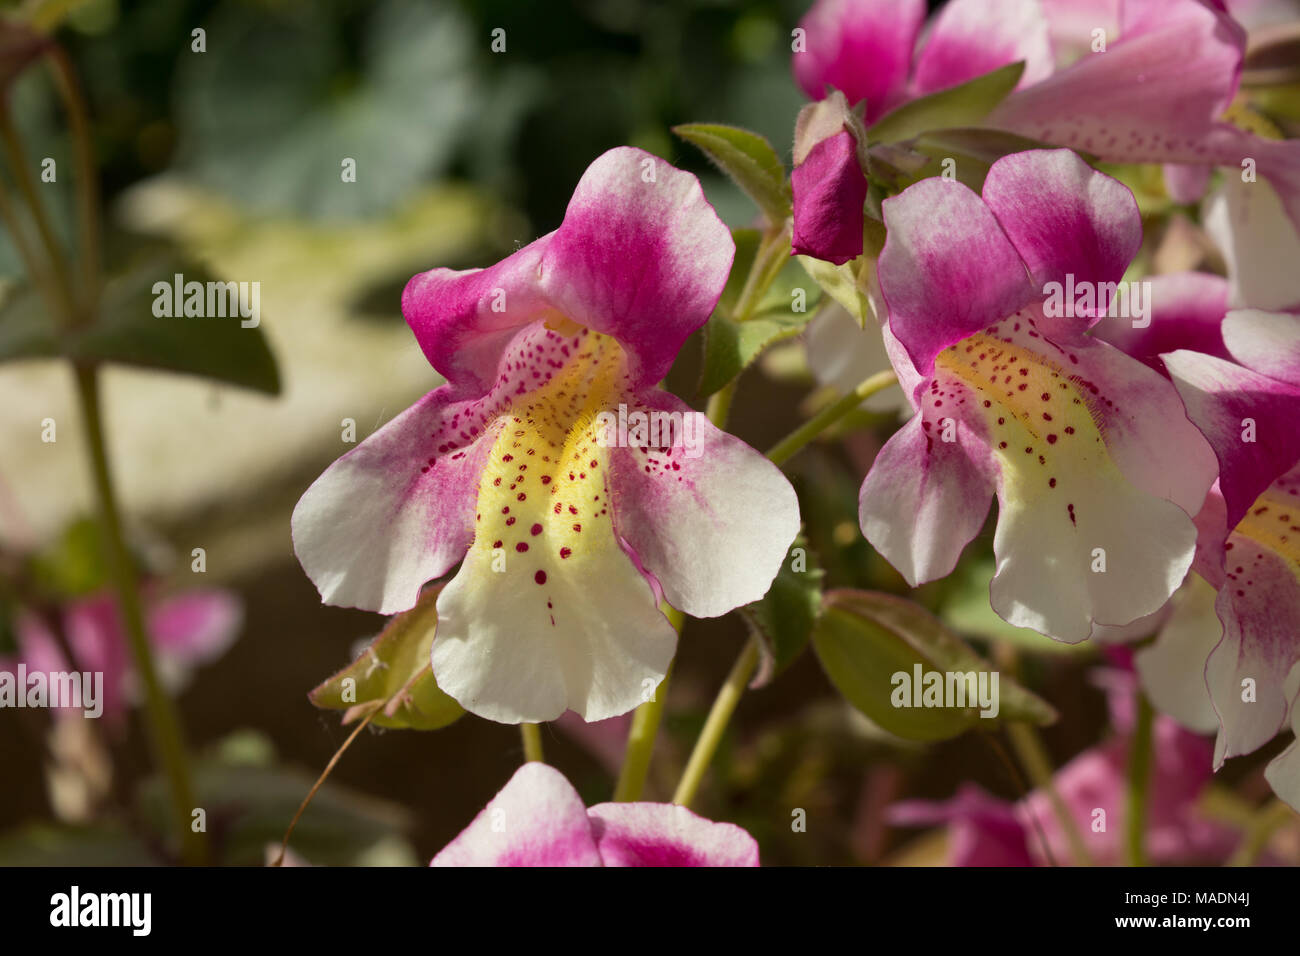 Trumpet Shaped Pink And White Mimulus Naiandinus Chilean Monkey